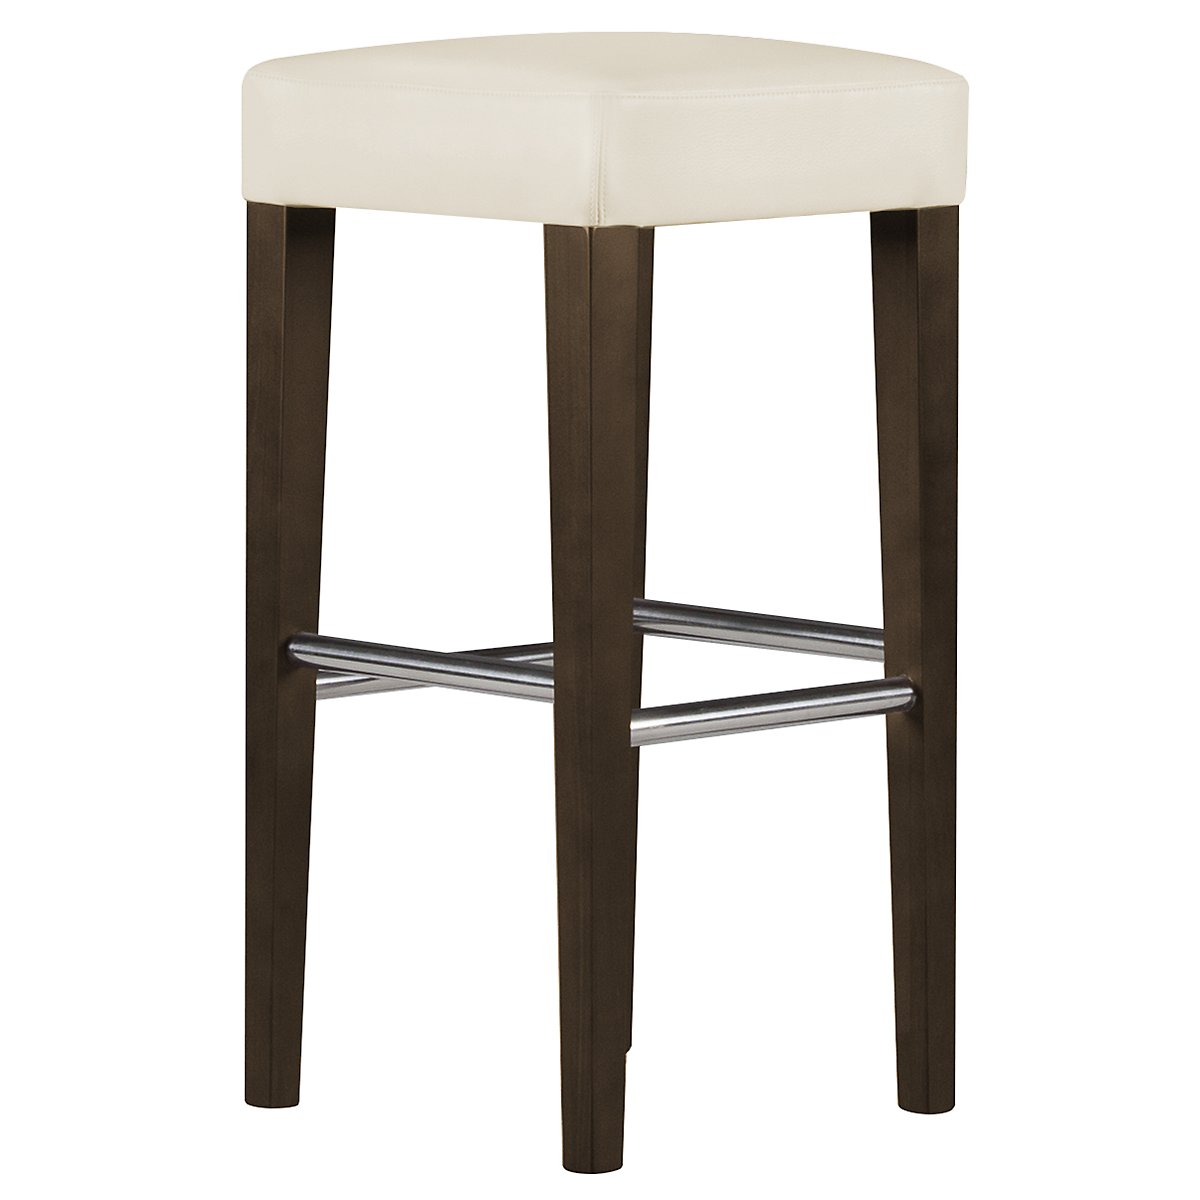 "Kayla2 Light Beige Bonded Leather 30"" Bonded Leather Barstool"